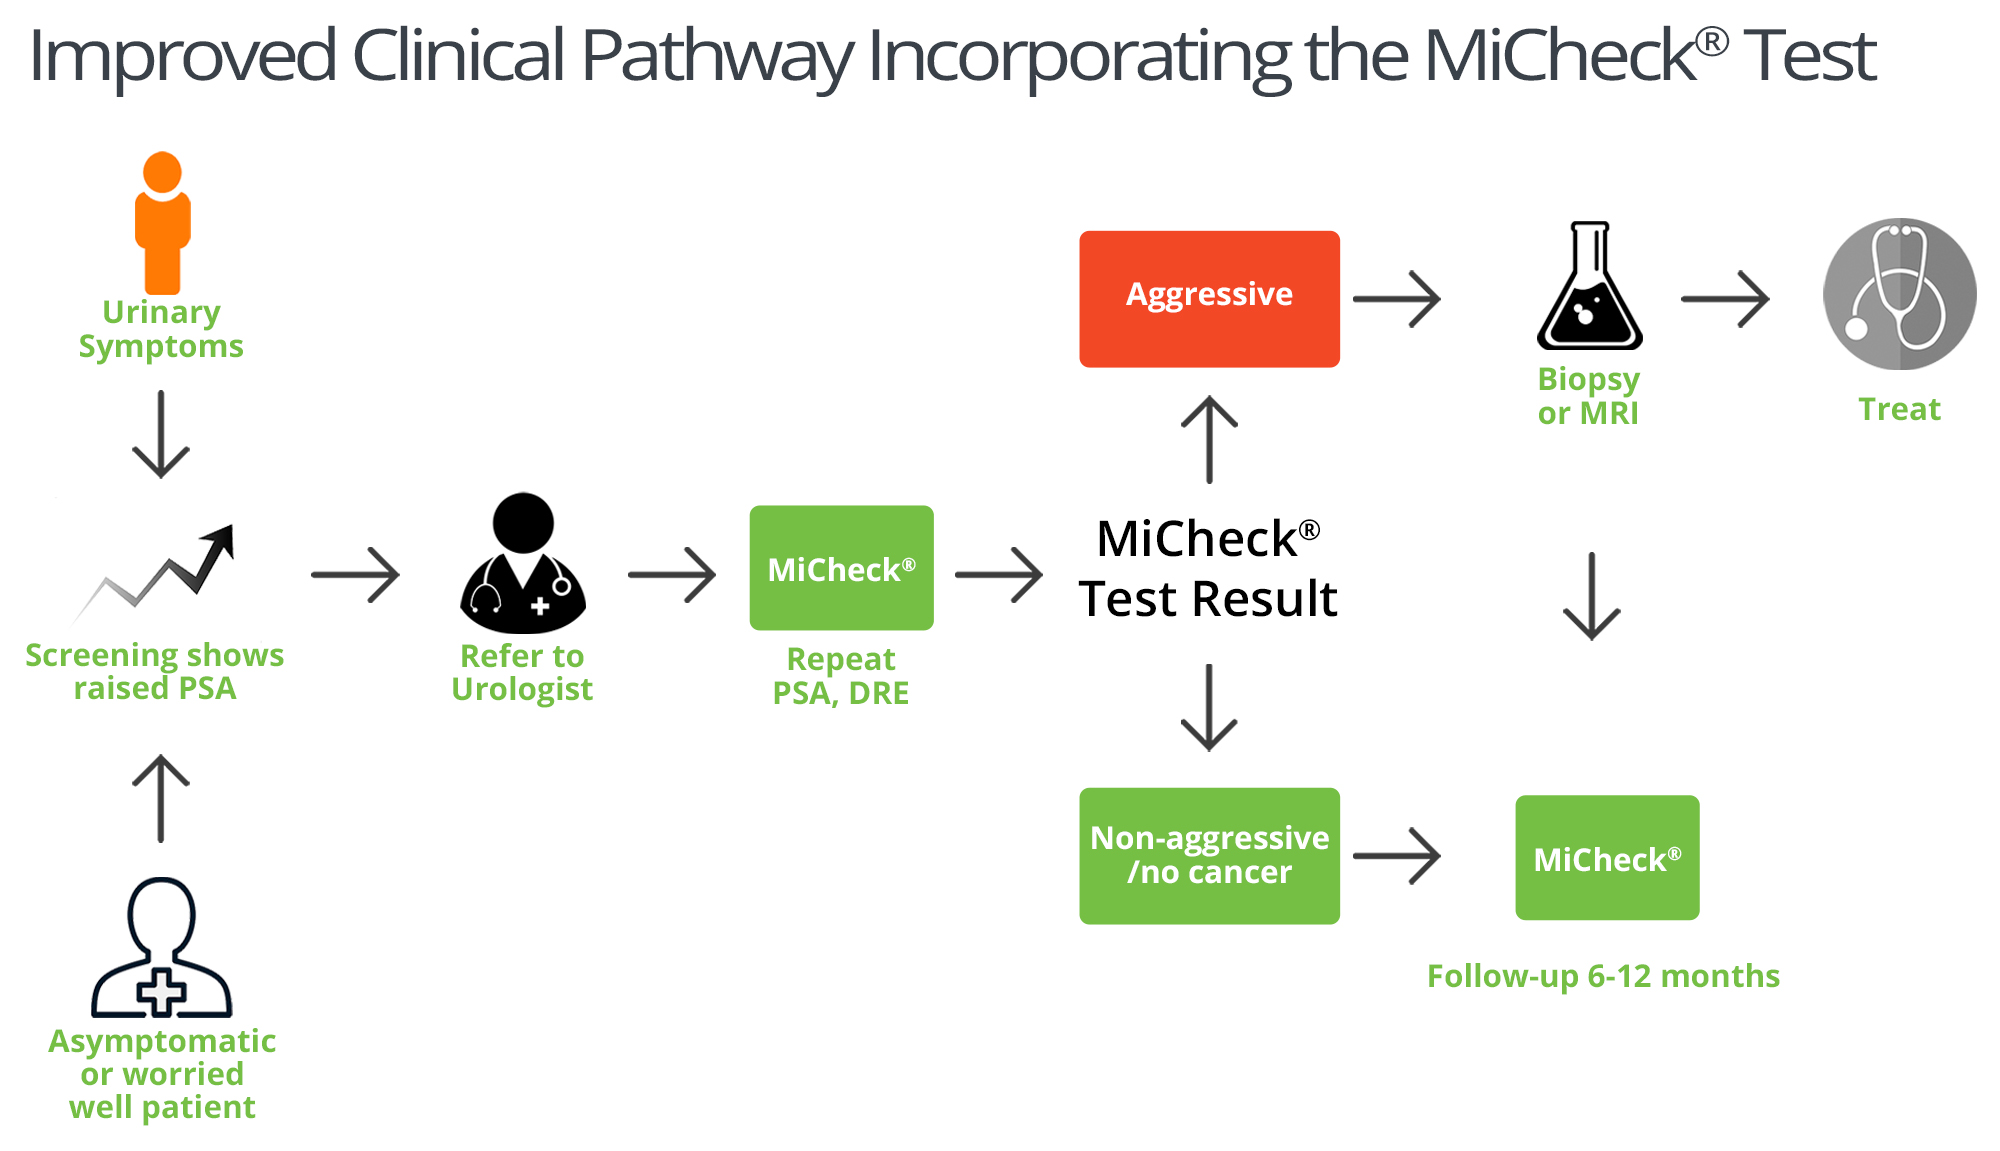 Improved Clinical Pathway Incorporating MiCheck Prostate